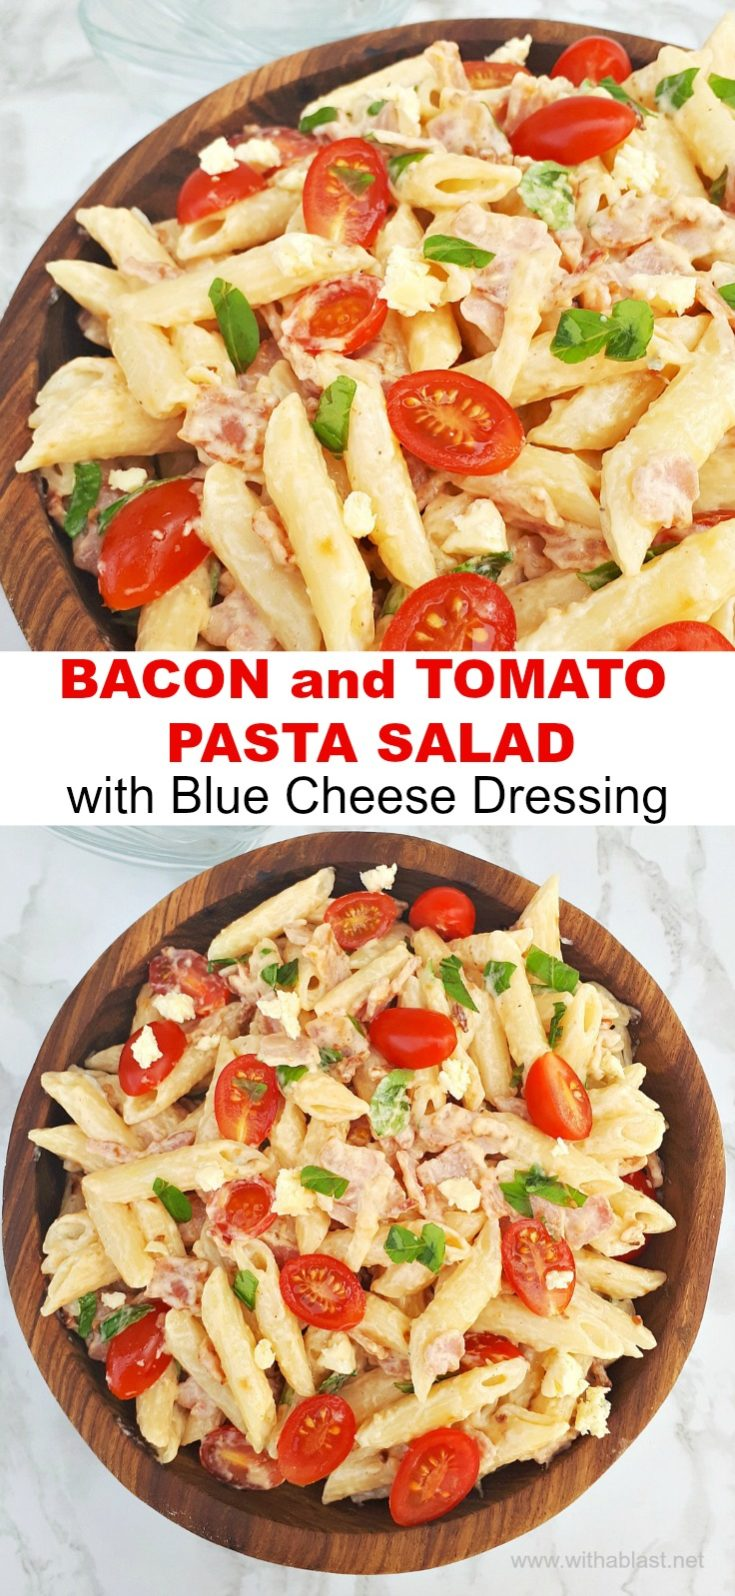 Bacon Tomato salad with Blue Cheese Dressing is so flavorful and always a winner to serve as an appetizer or light dinner #Salad #Appetizer #TomatoSalad #PastaSalad #BlueCheeseDressing